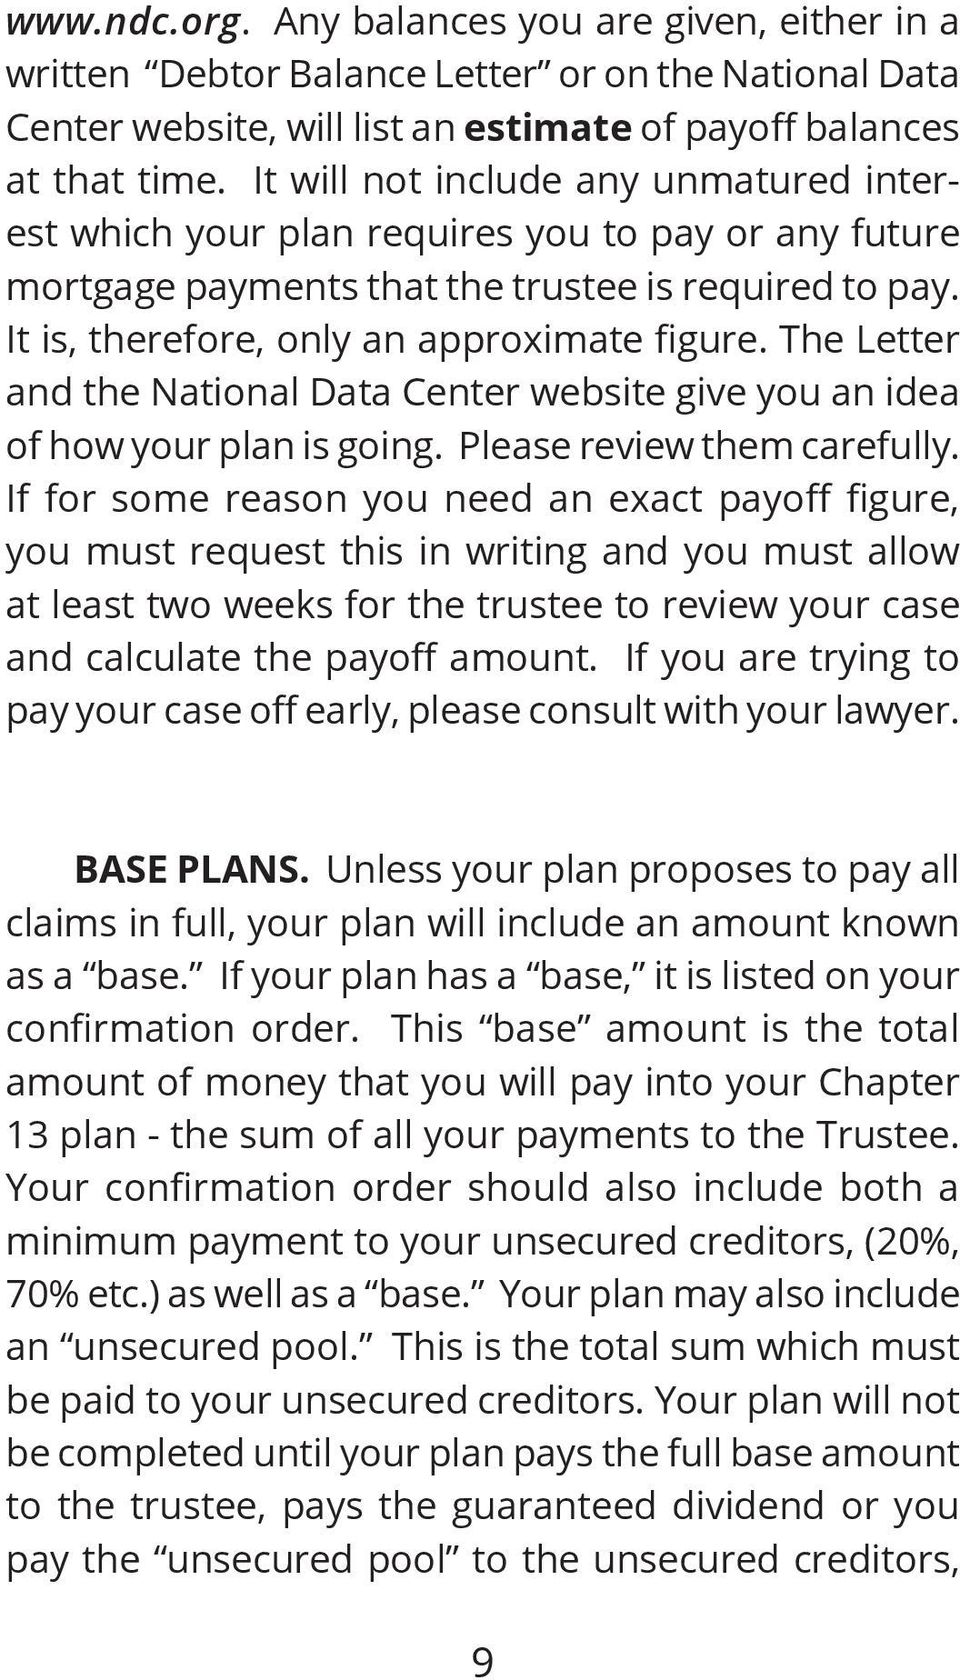 The Letter and the National Data Center website give you an idea of how your plan is going. Please review them carefully.